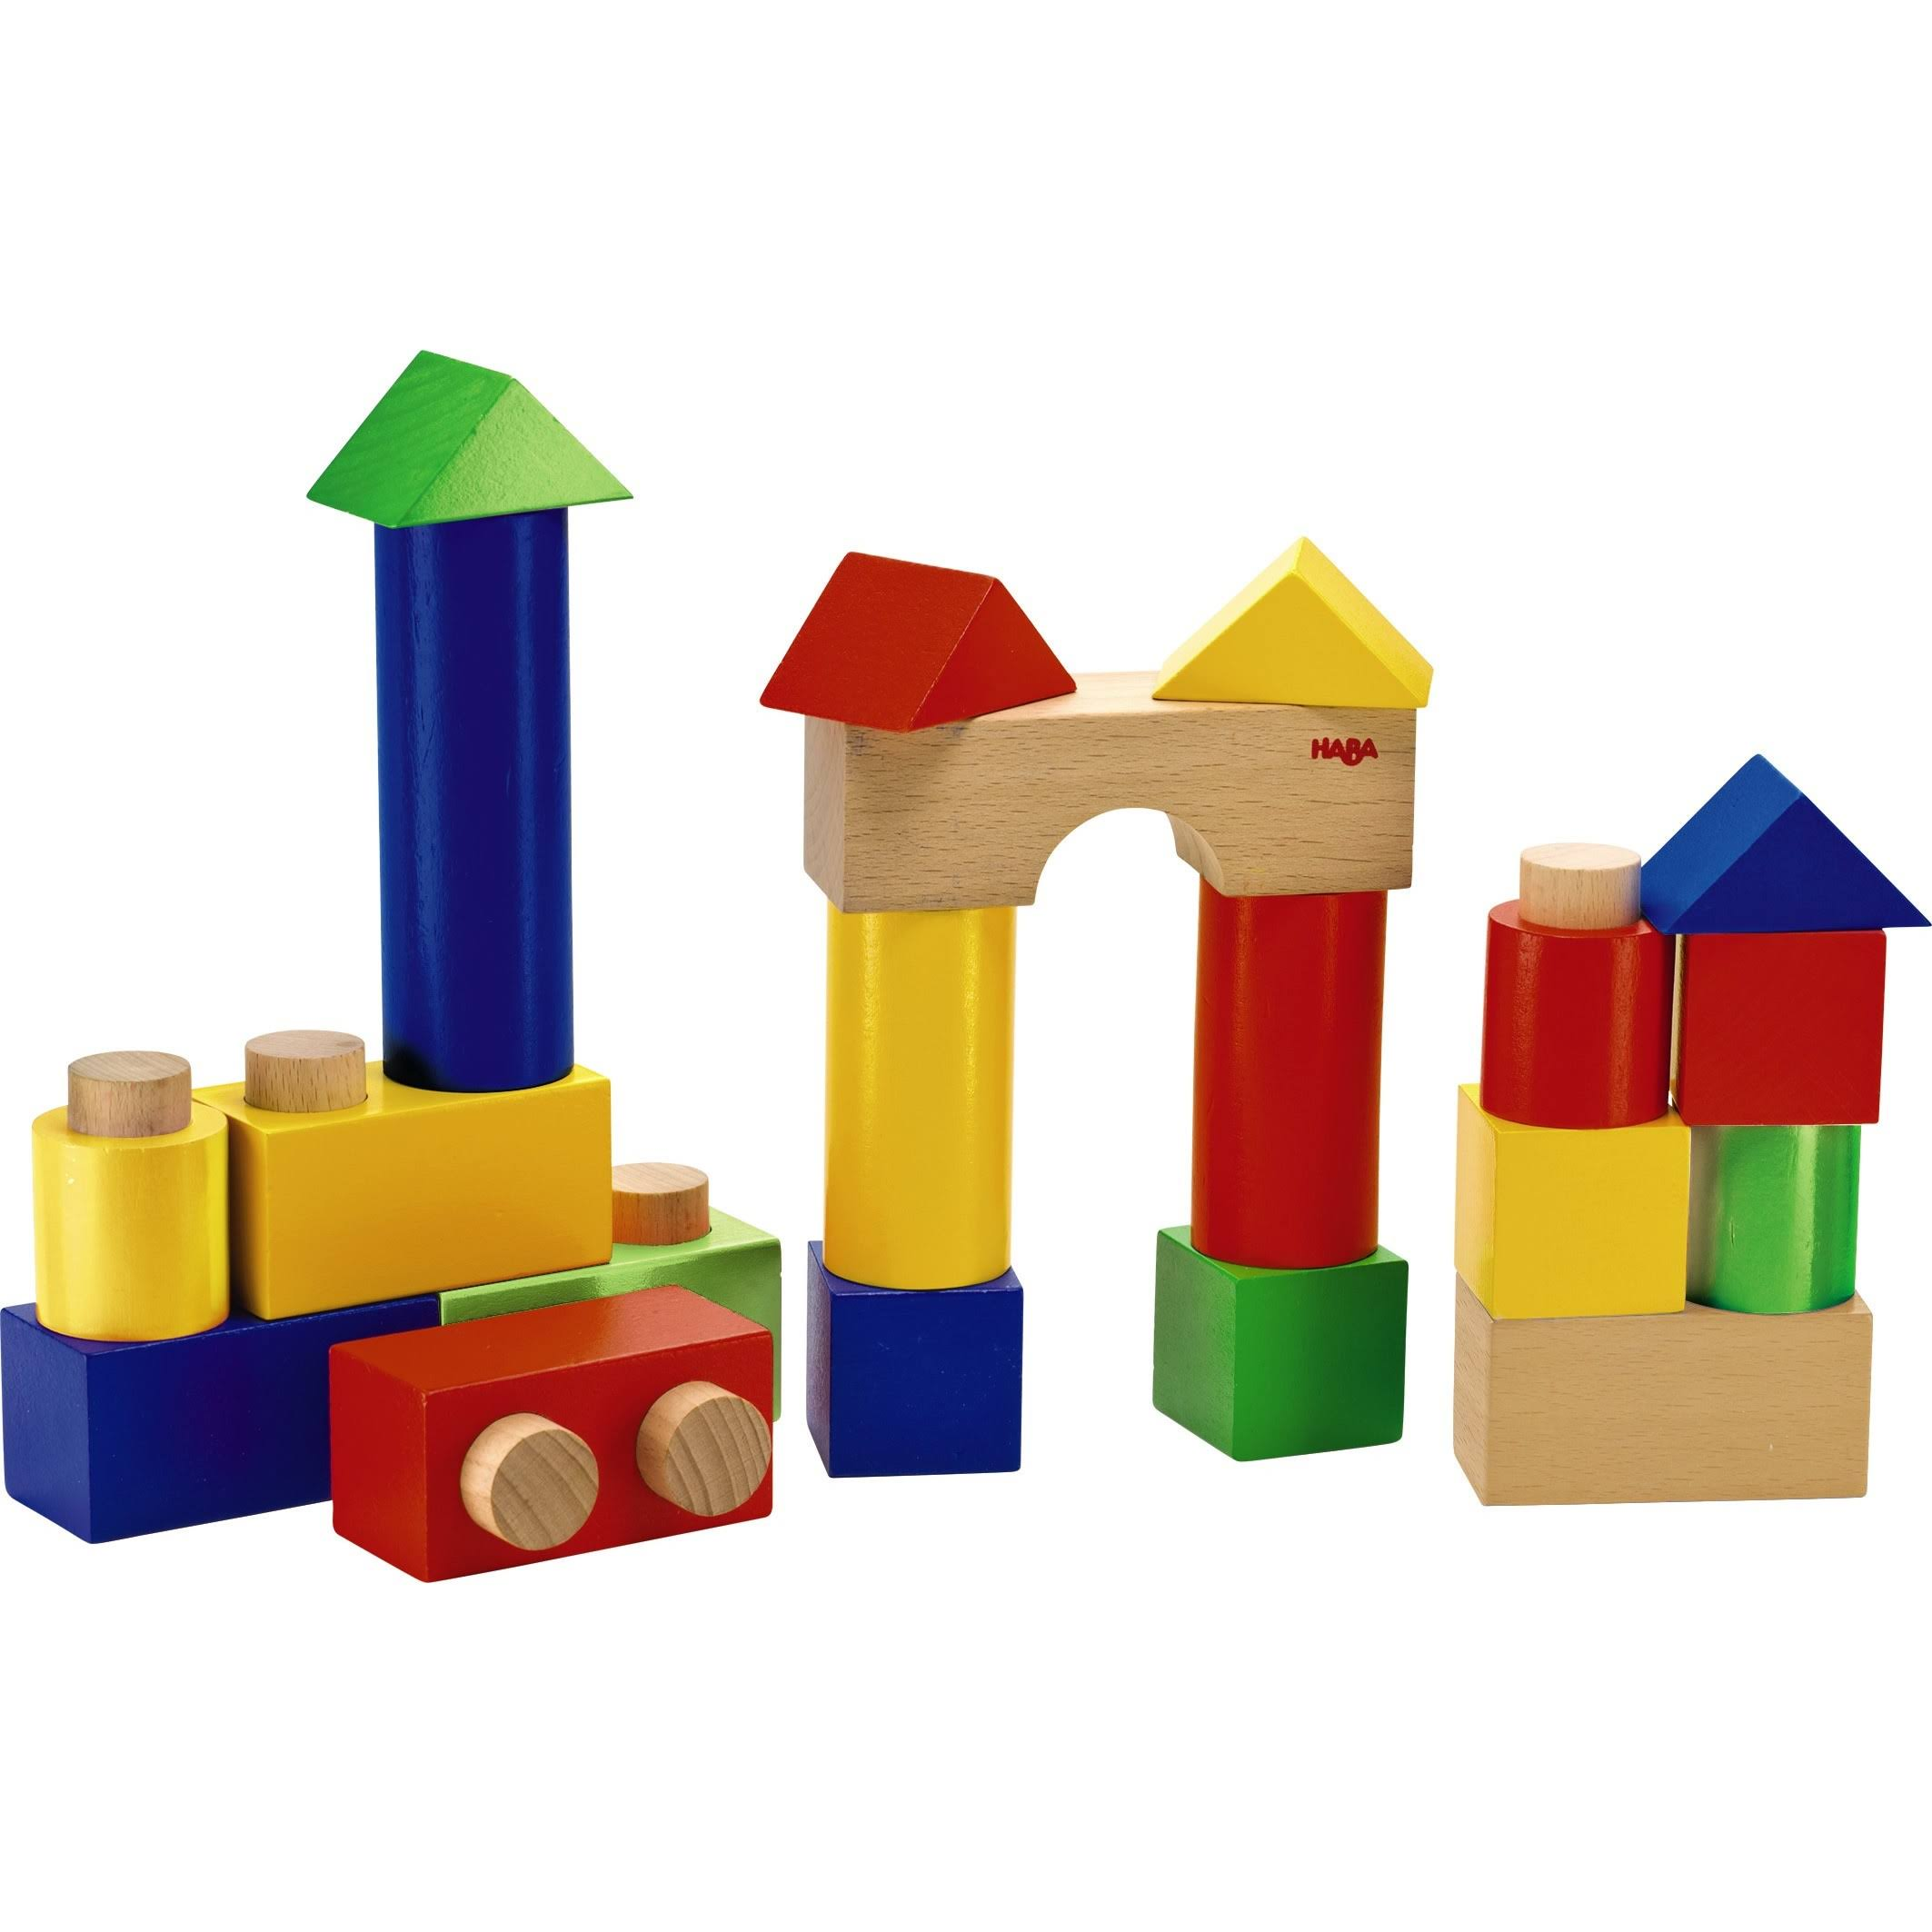 Haba Stack & Play Wooden Blocks - With Pegs, 18pc